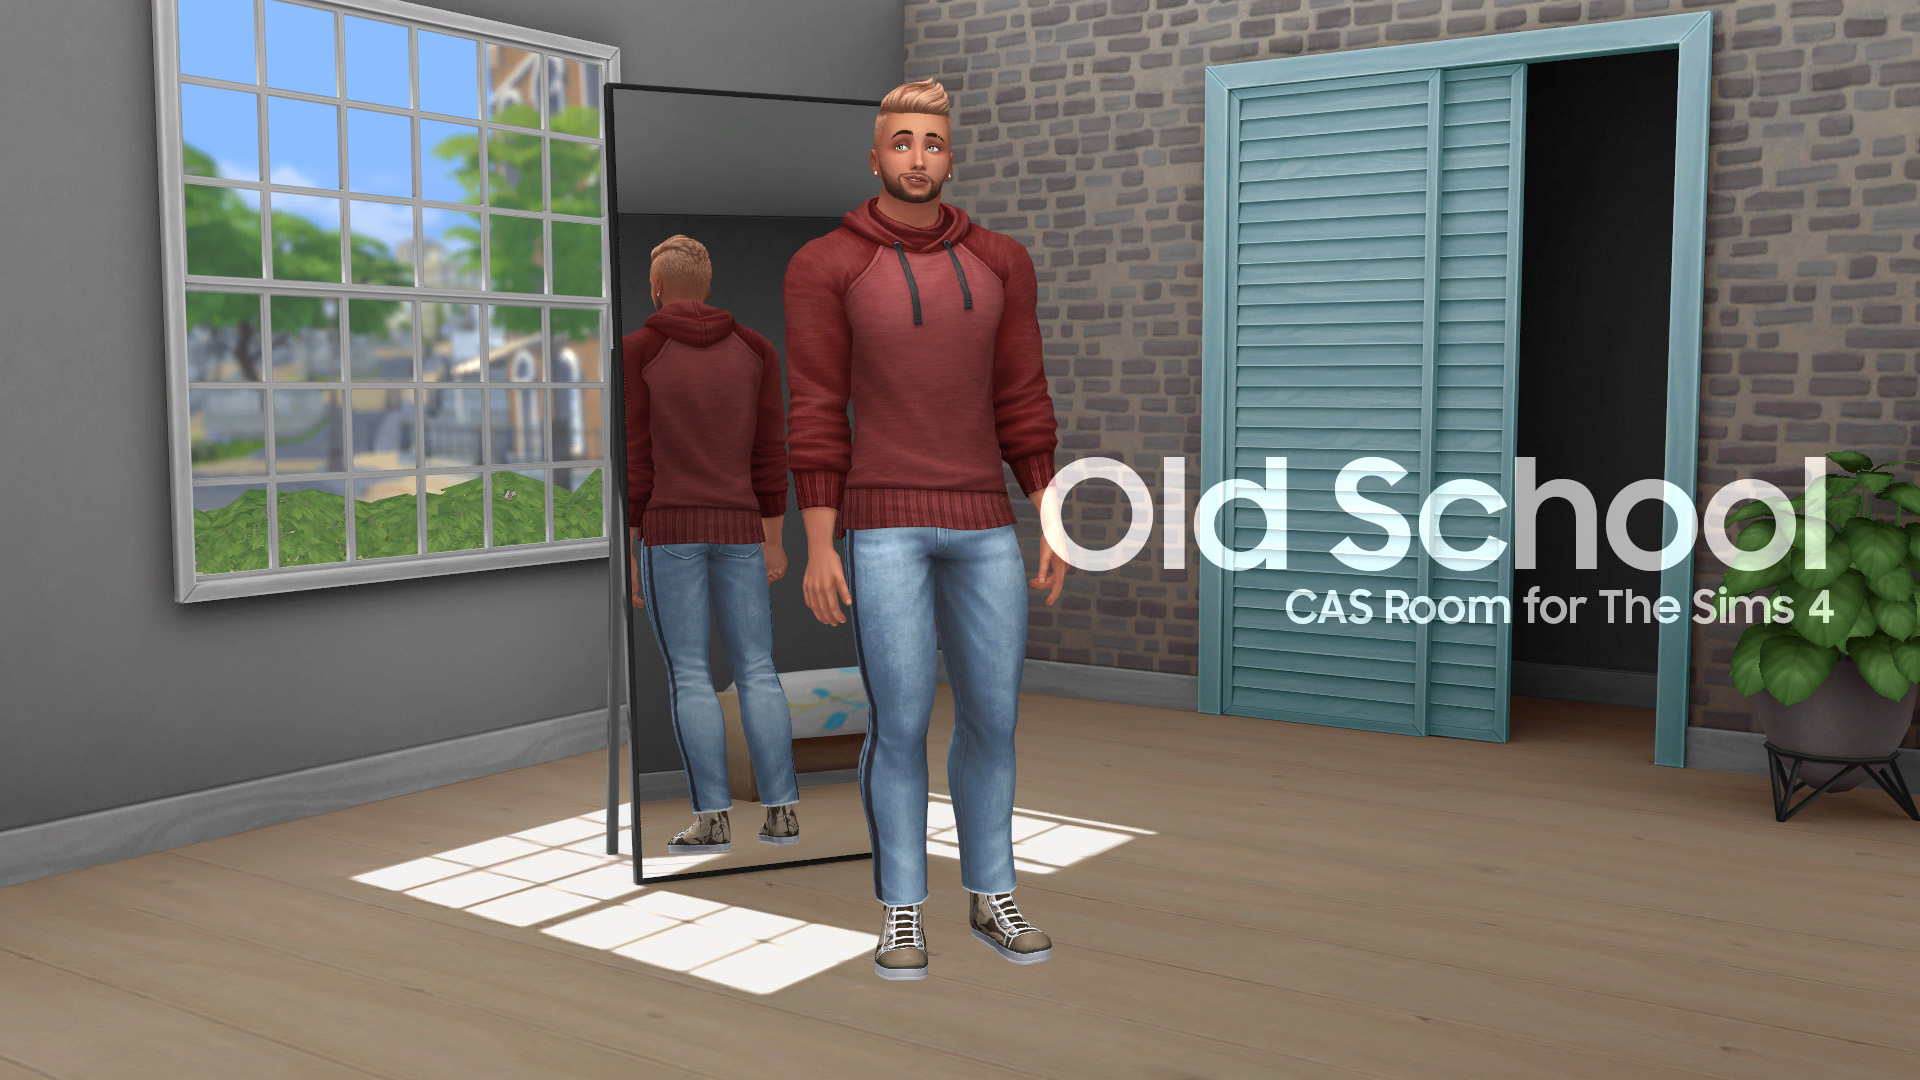 ModTheSims – Old School – CAS Room